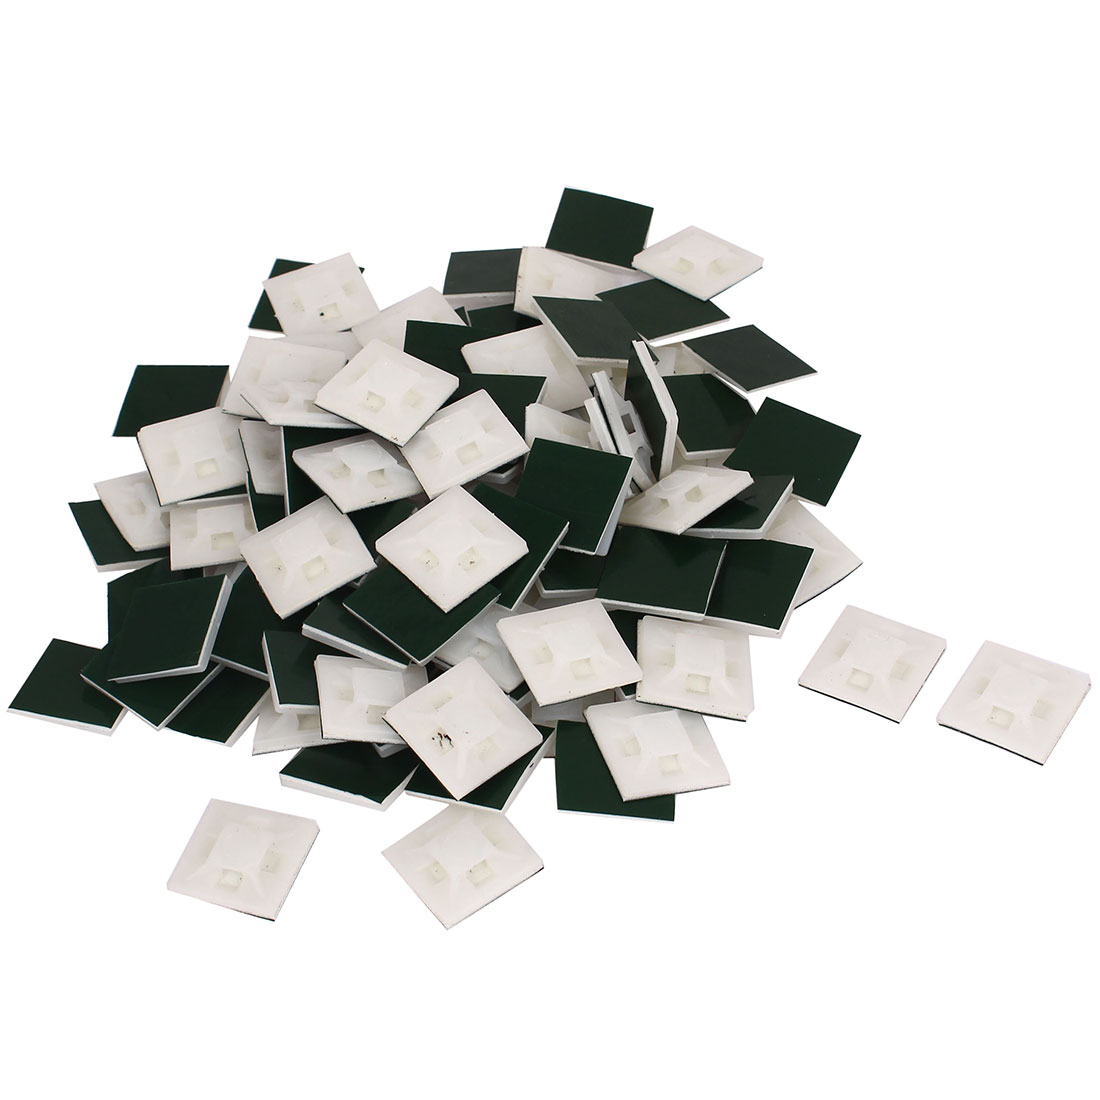 White 100 Pack Self Adhesive Cable Tie Base Holders 20 mm x 20 mm x 4 mm